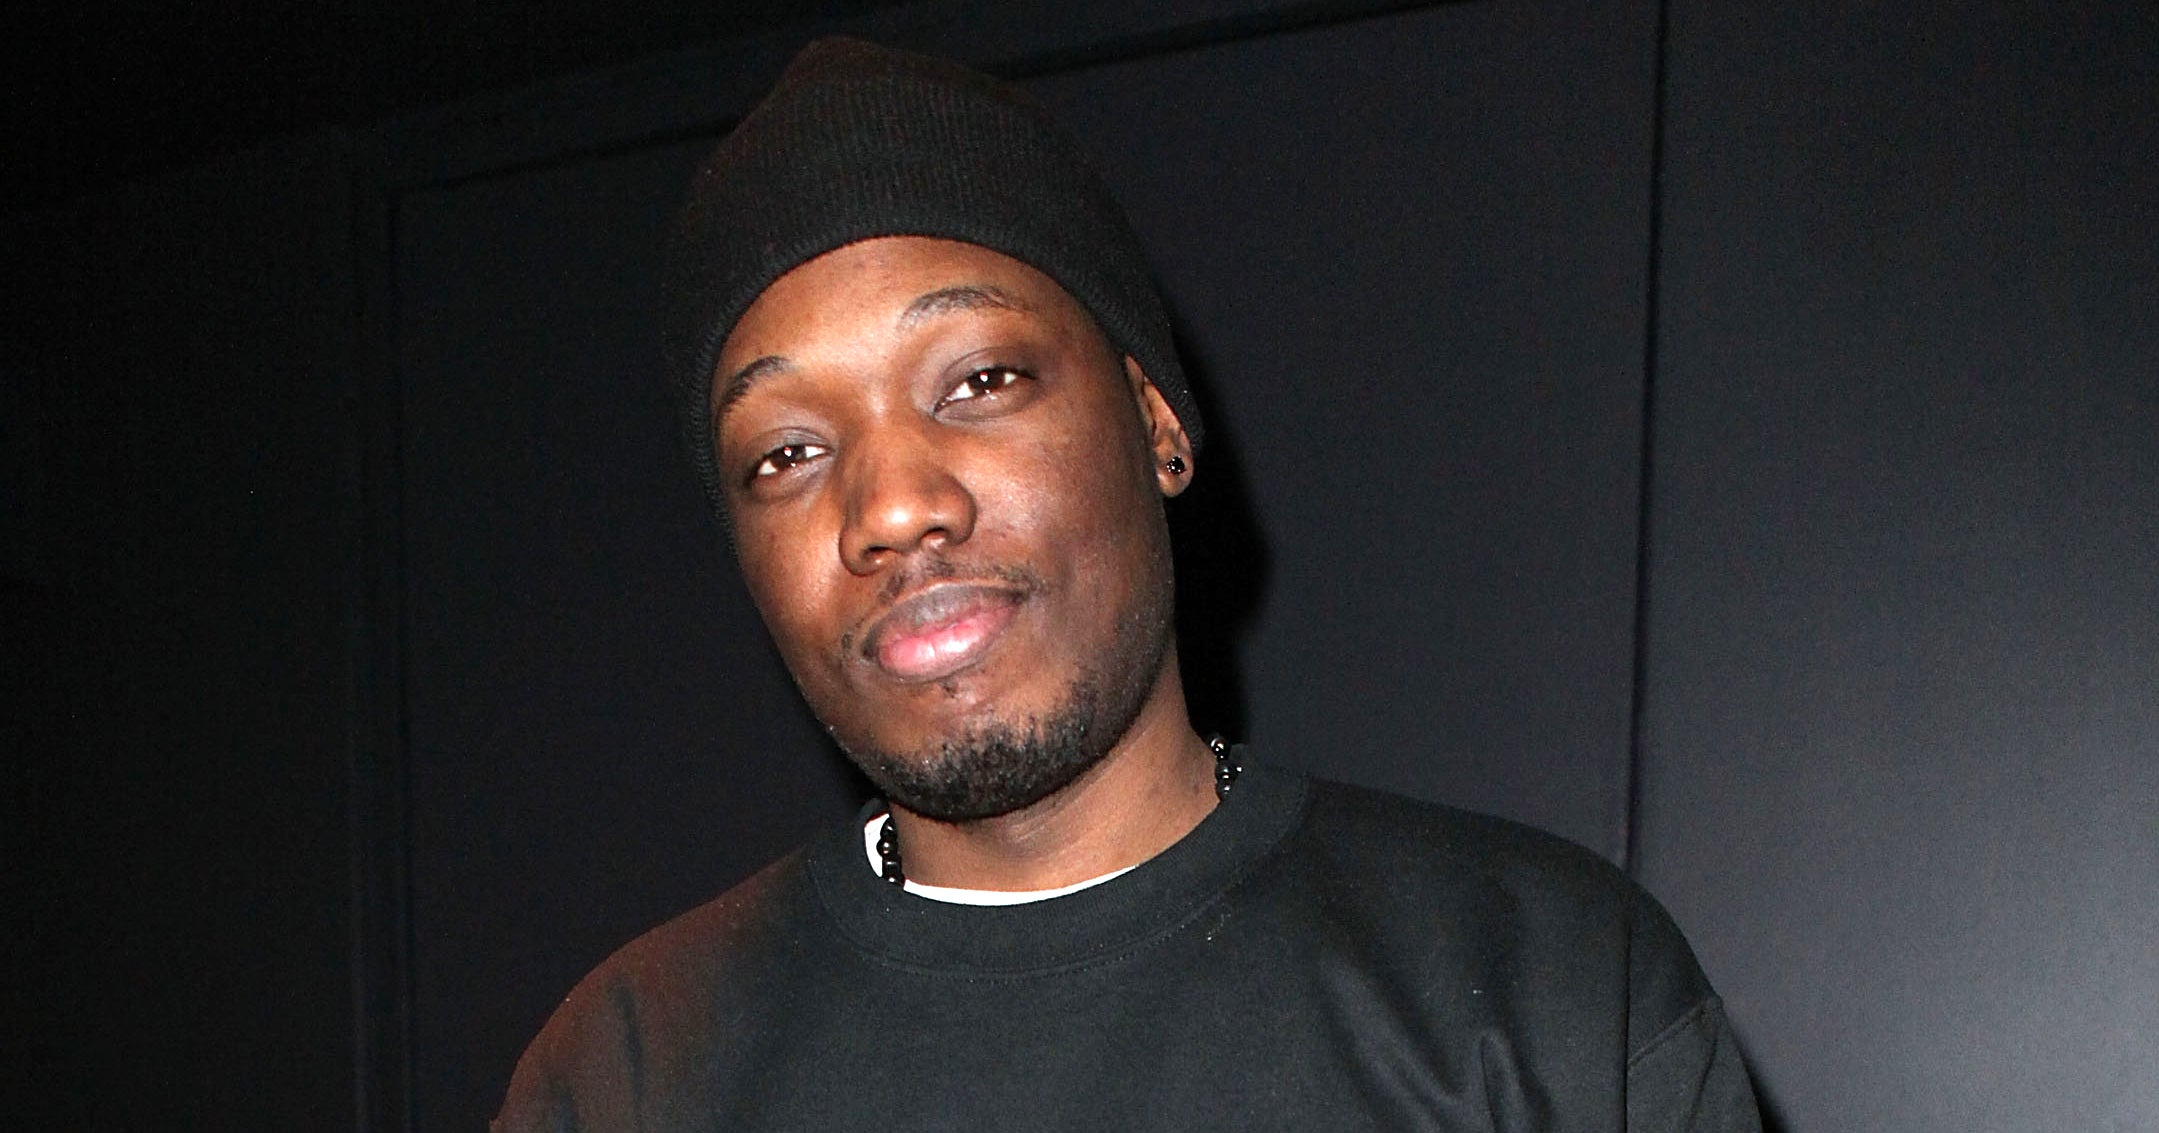 When Will Michael Che Face Consequences For Punching Down On Black Women?